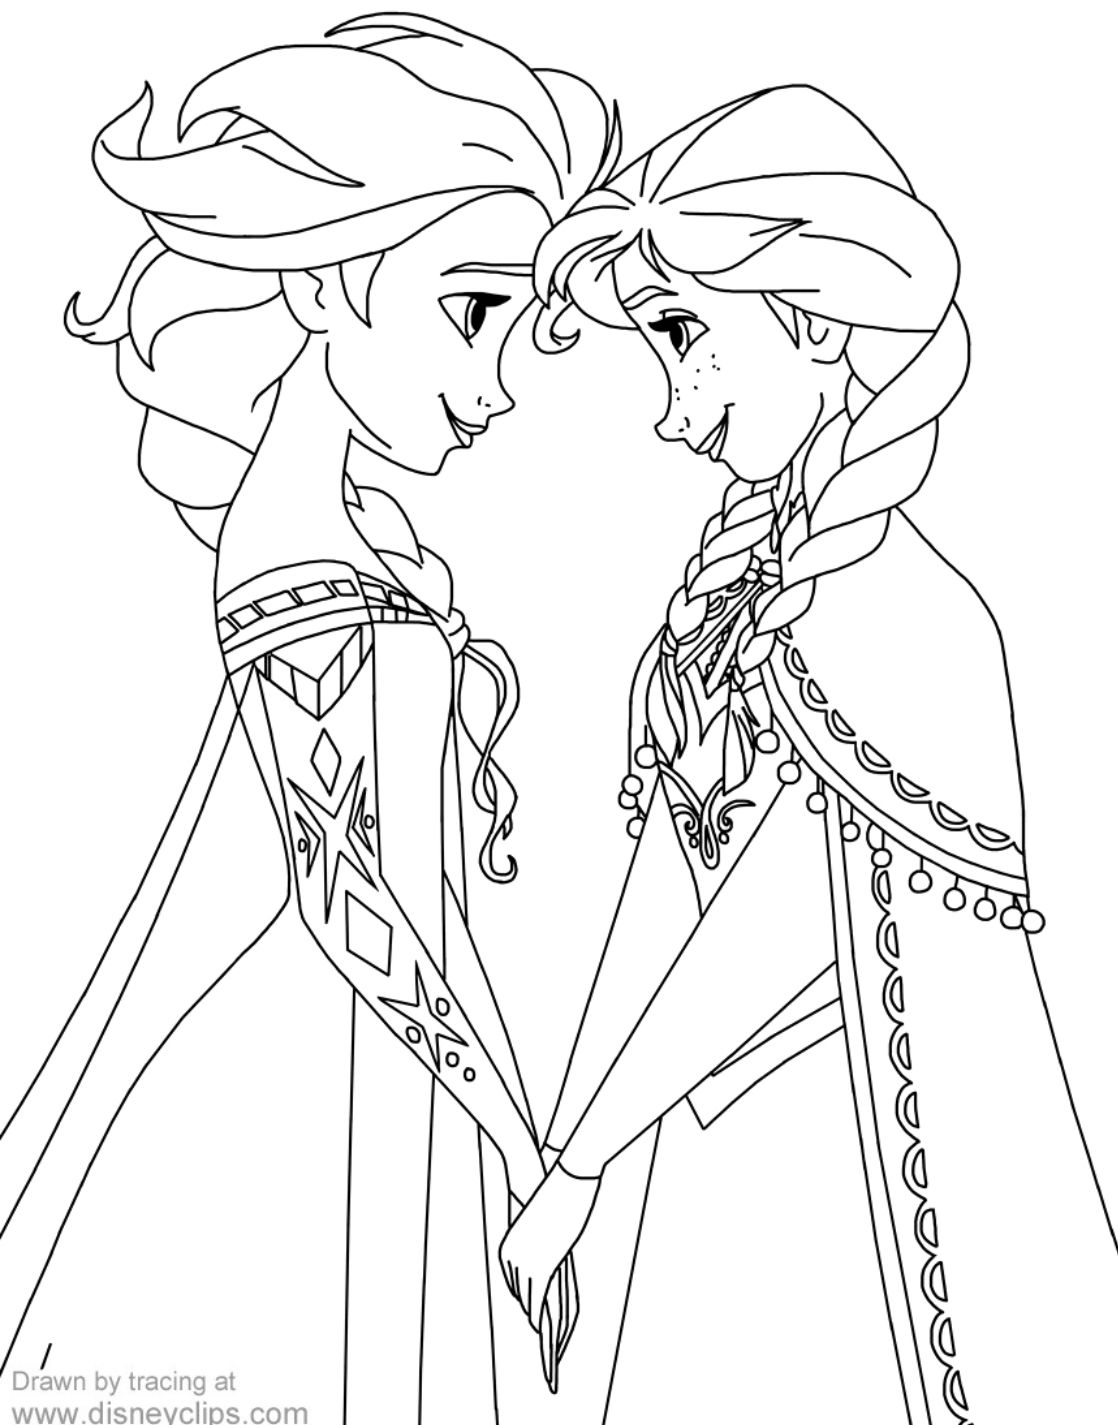 elsa and anna pictures to color anna and elsa coloring pages elsa coloring pages frozen pictures to anna color elsa and